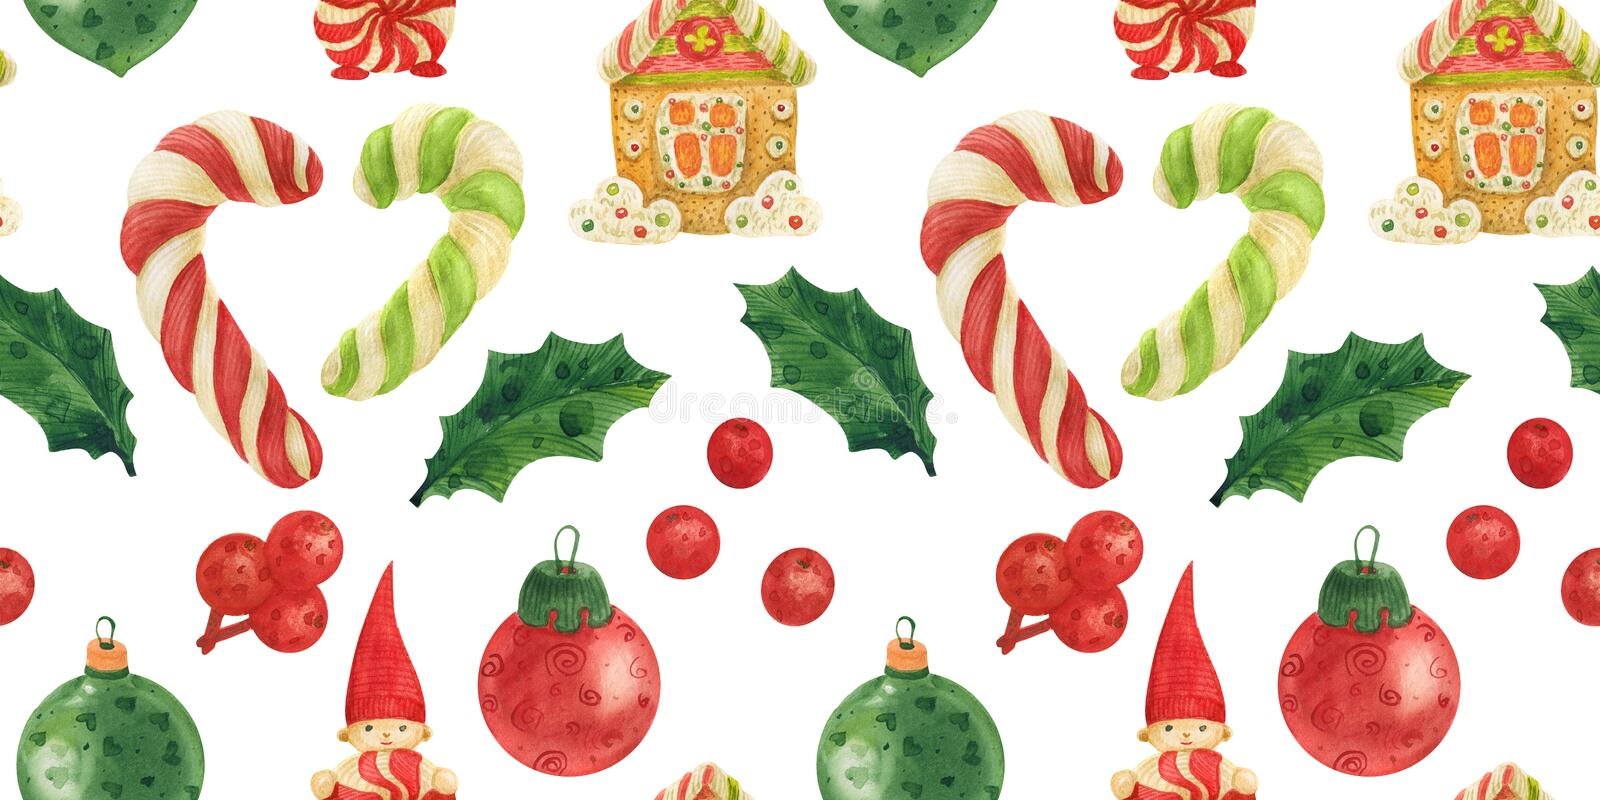 Christmas Elves Factory pattern with candy canes, holly and glass baubles stock illustration